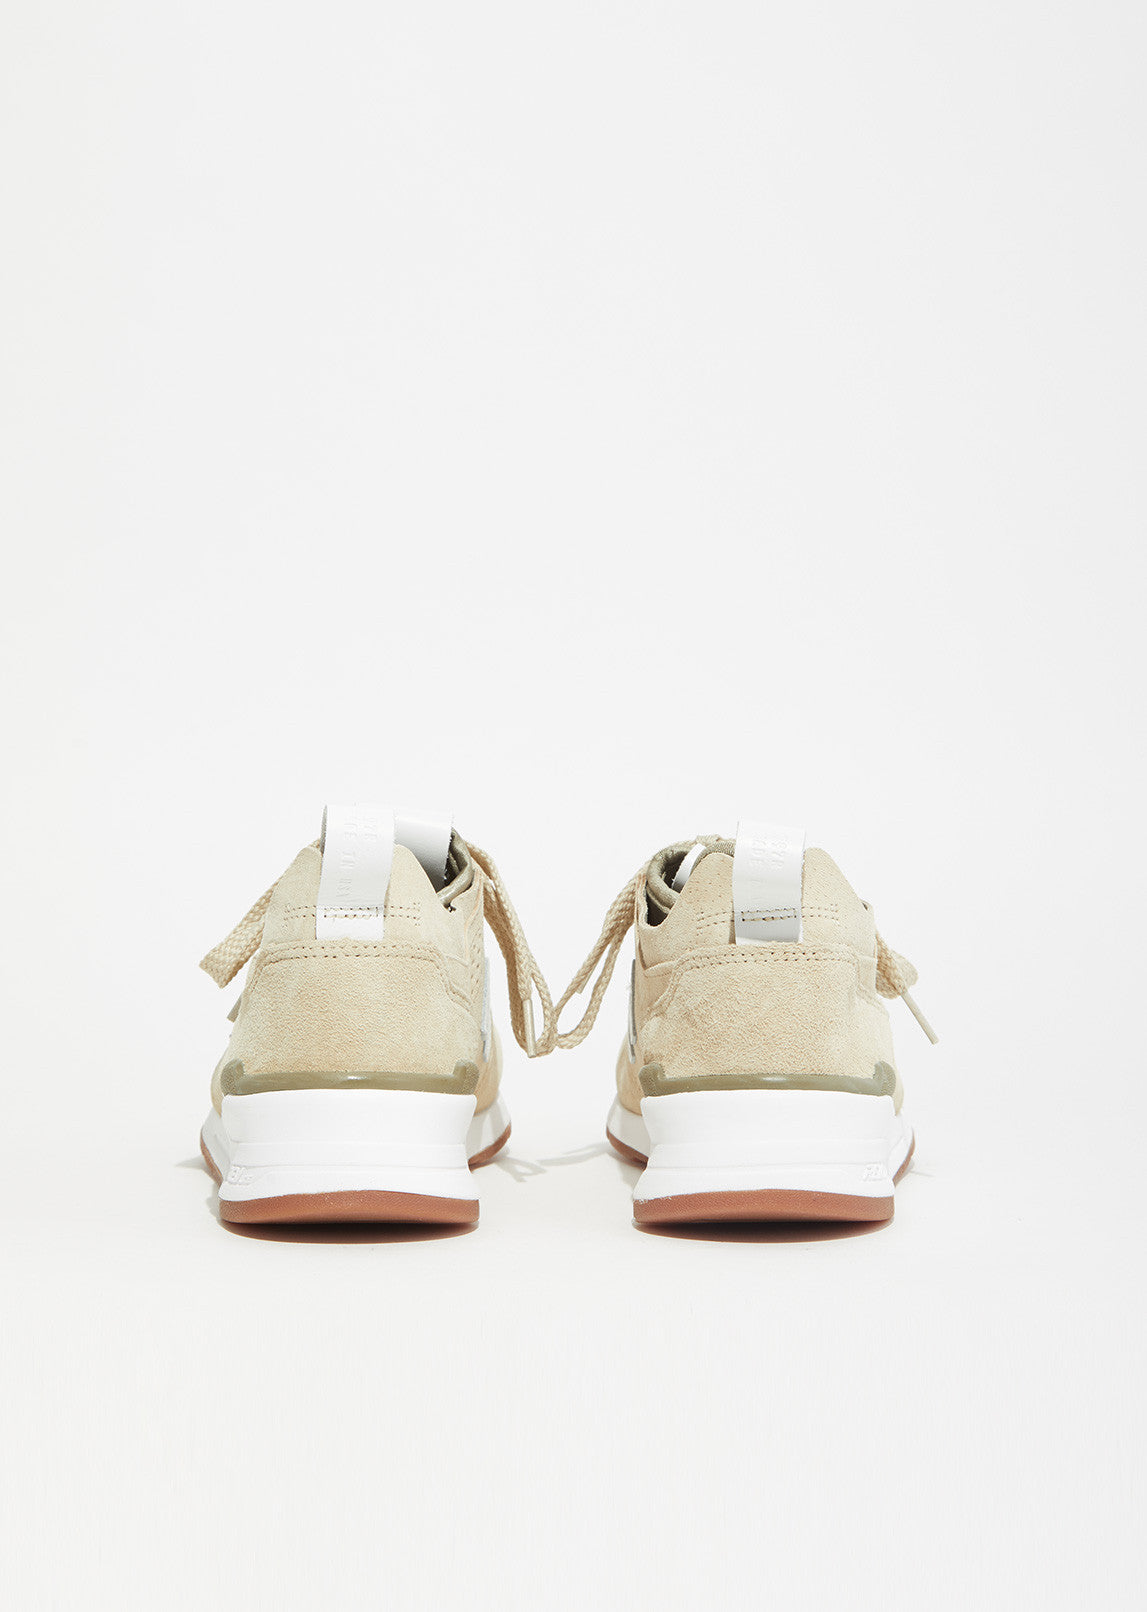 new balance 997 pig suede leather sneakers